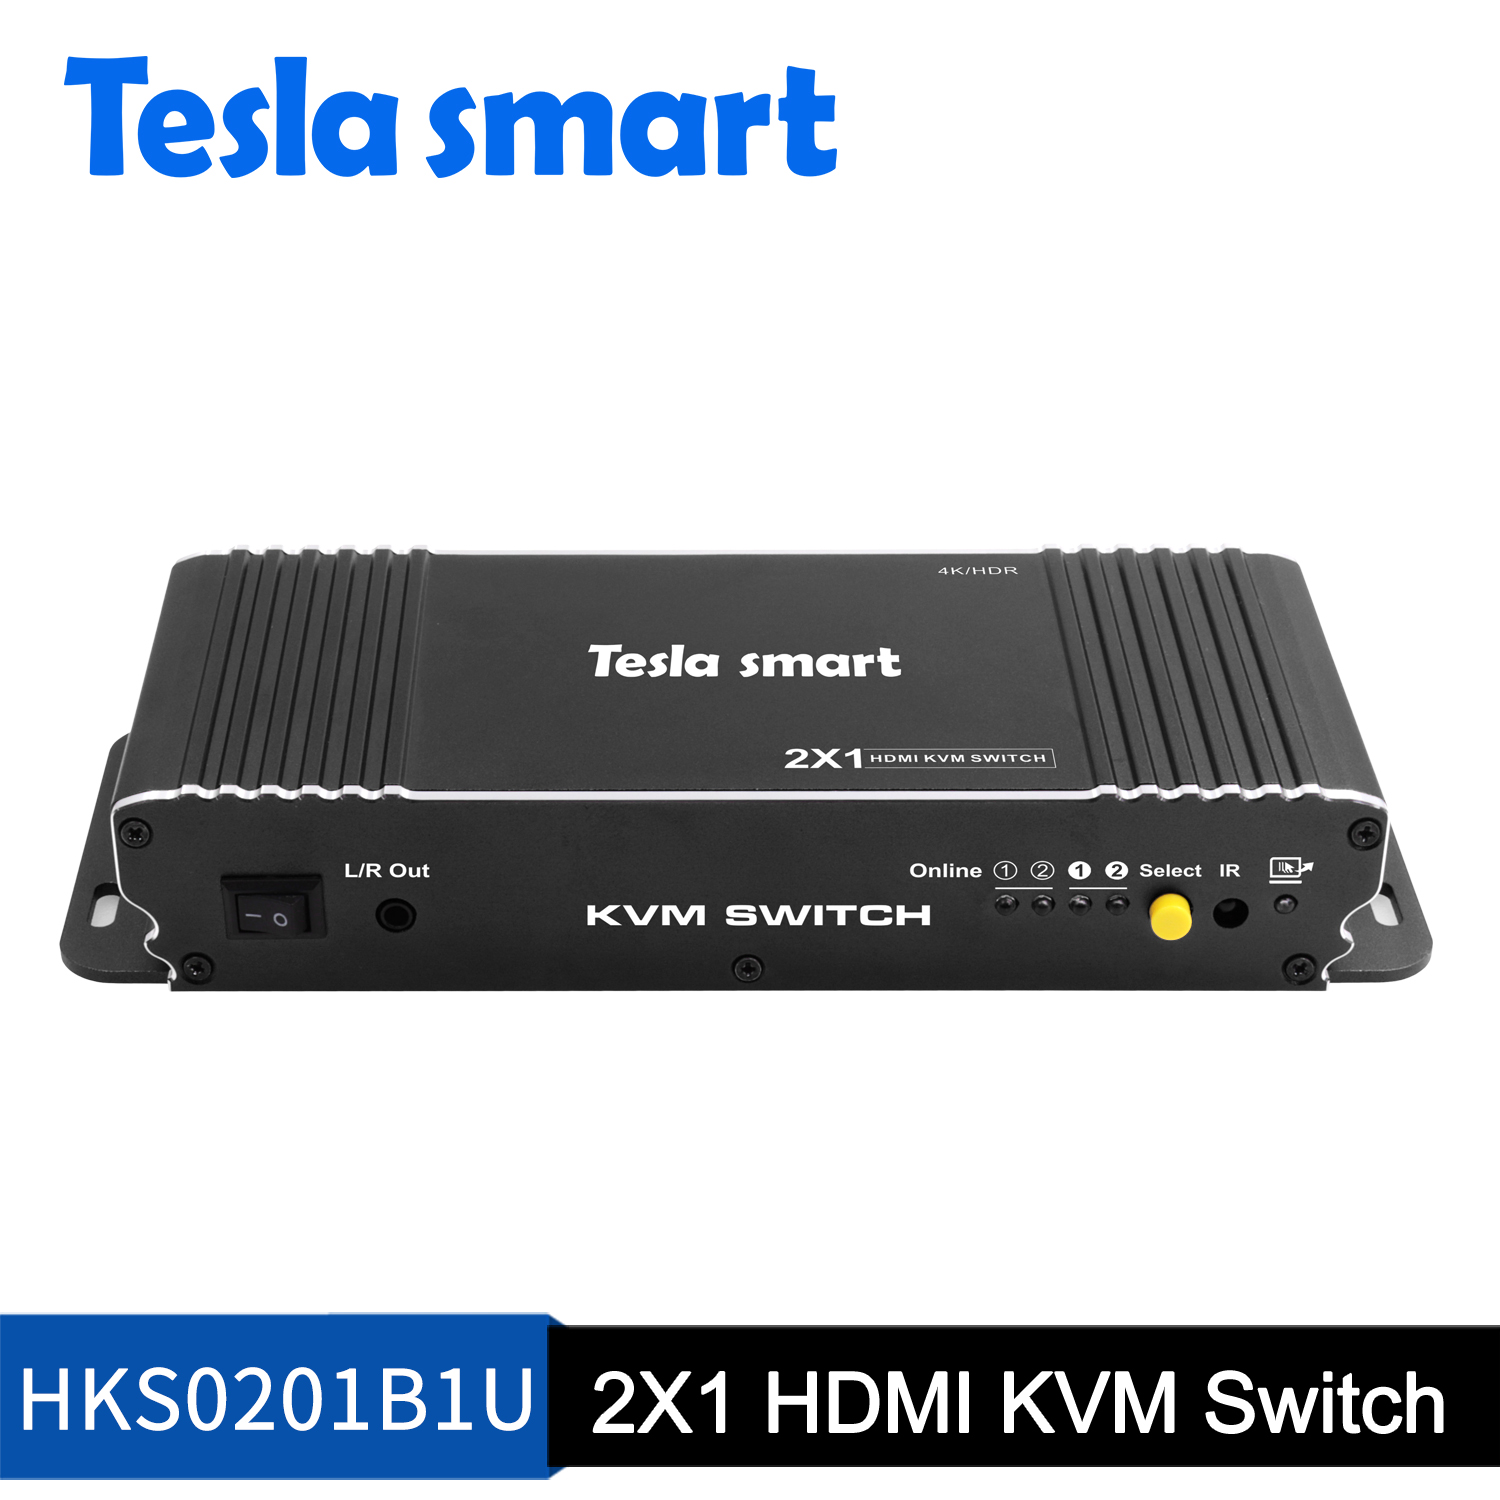 2 X 1 HDMI KVM Switch 4K@60Hz 4:4:4